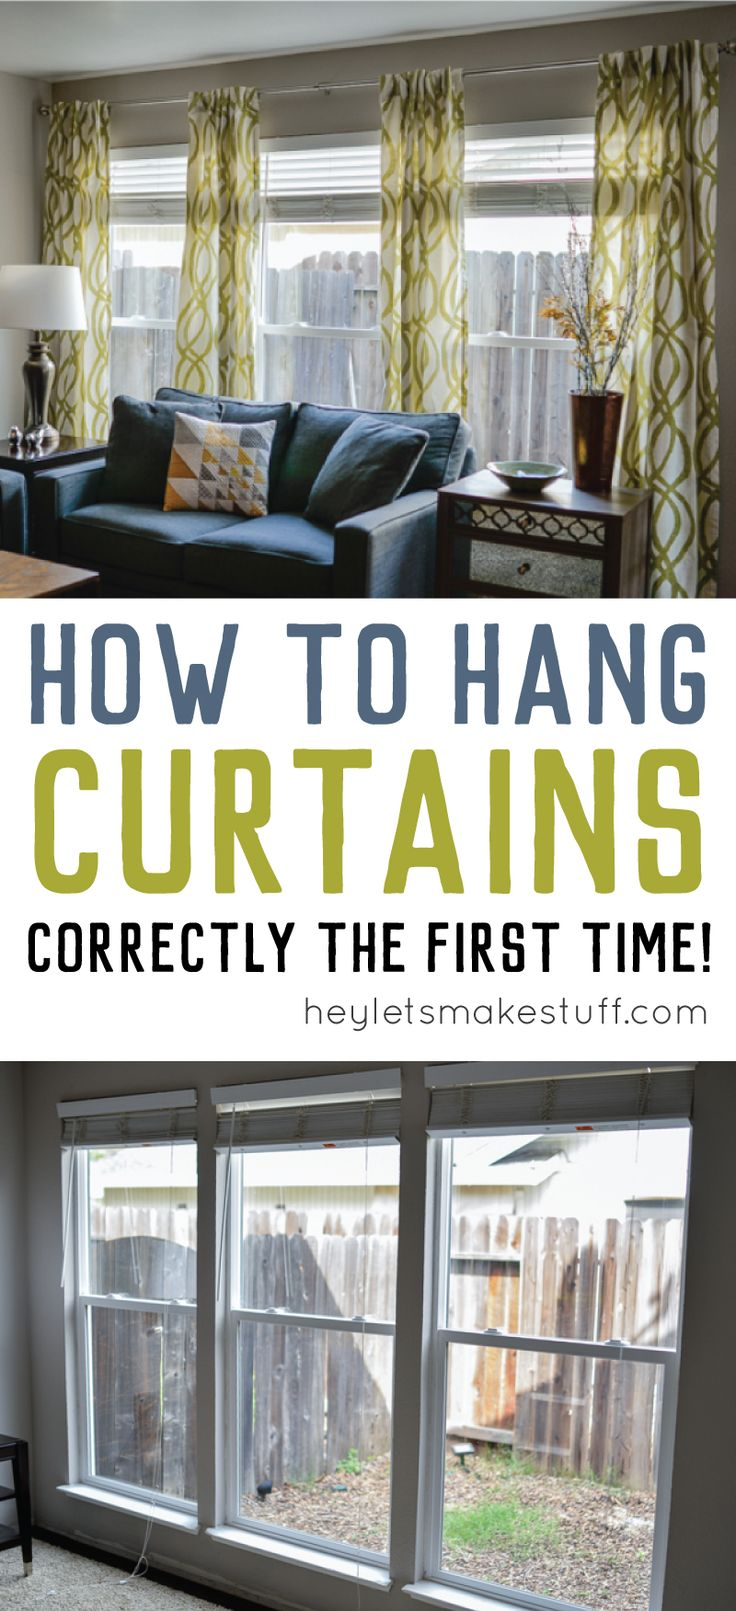 1000 ideas about hanging curtain rods on pinterest hanging curtains curtain rods and curtains. Black Bedroom Furniture Sets. Home Design Ideas